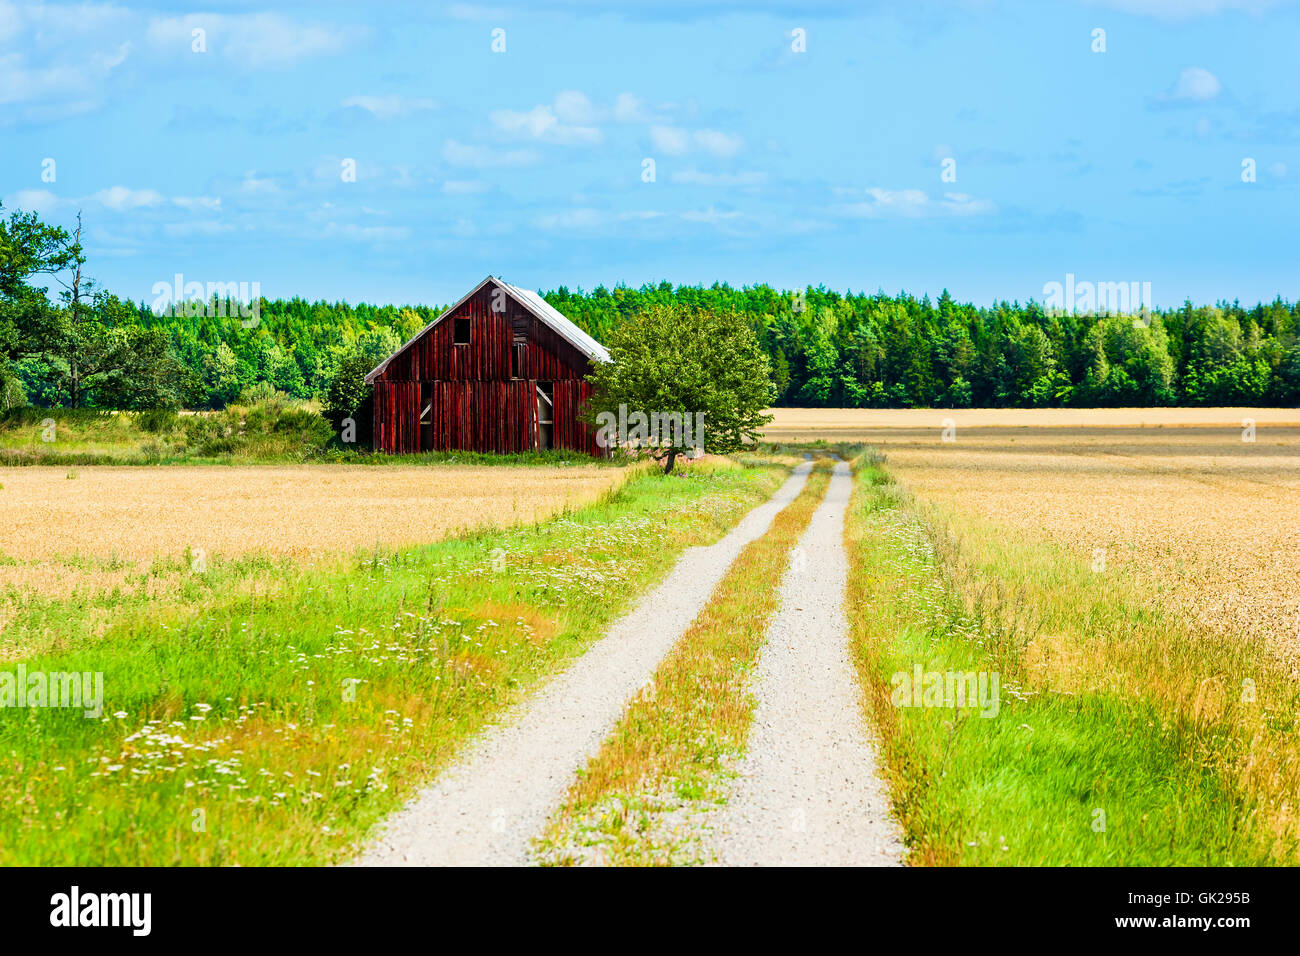 Dark red barn beside a country road surrounded by ripe crop and forest. Late summer early fall in the Swedish countryside. - Stock Image